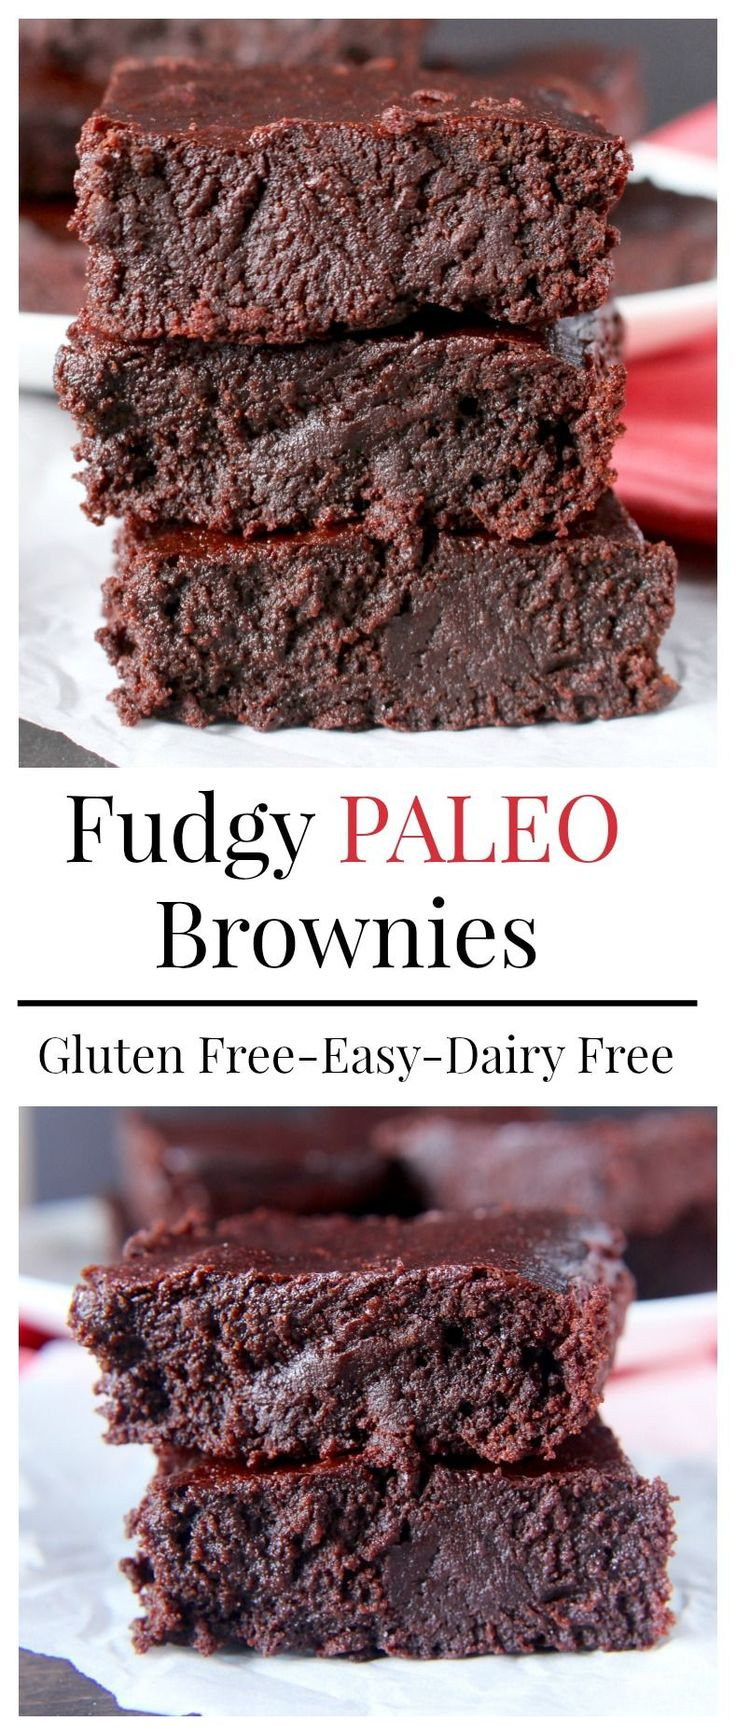 Fudgy Paleo Brownies- the BEST paleo brownies! No one will know they're healthy! Gluten free, dairy free, nut free and so delicious!! (contains egg)